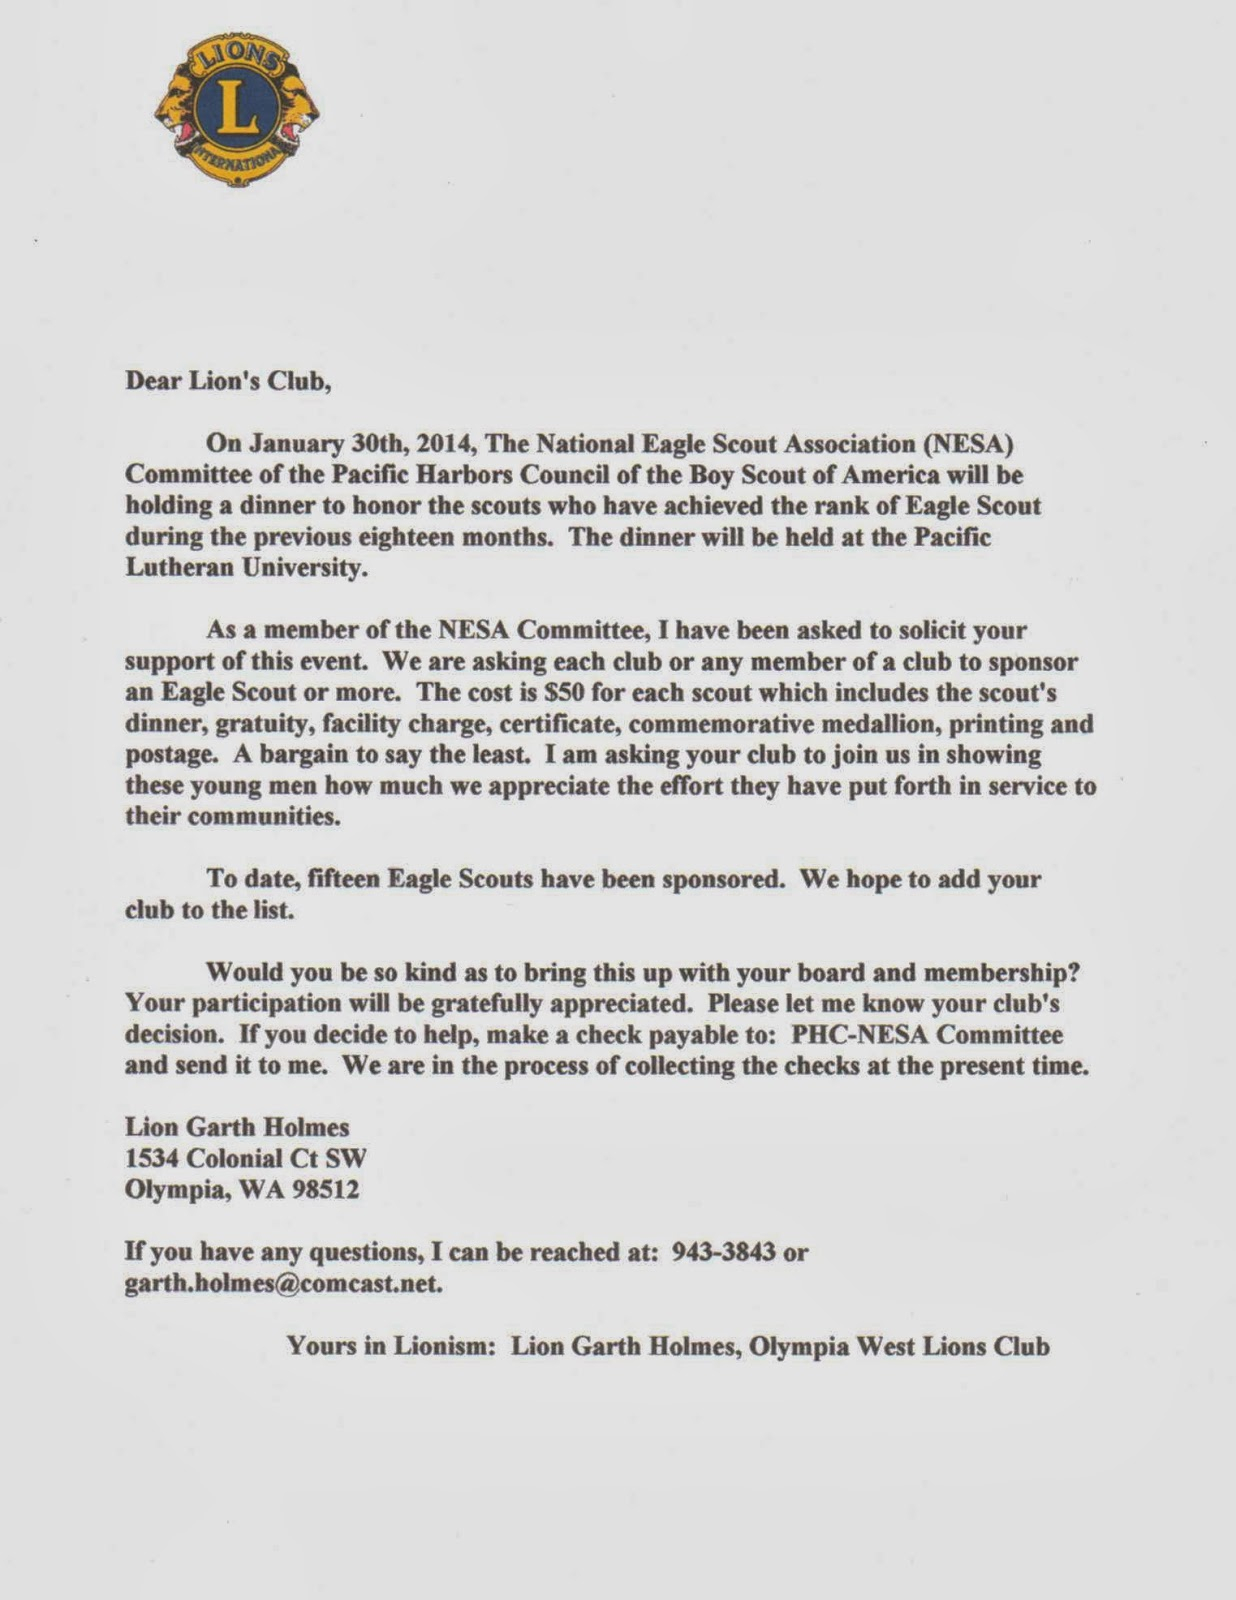 Eagle Scout Project Donation Letter Template on court honor, congratulation cards, court honor invitation, recommendation letter, ceremony invitation, emblem printable, court honor program, project plaque, event program,